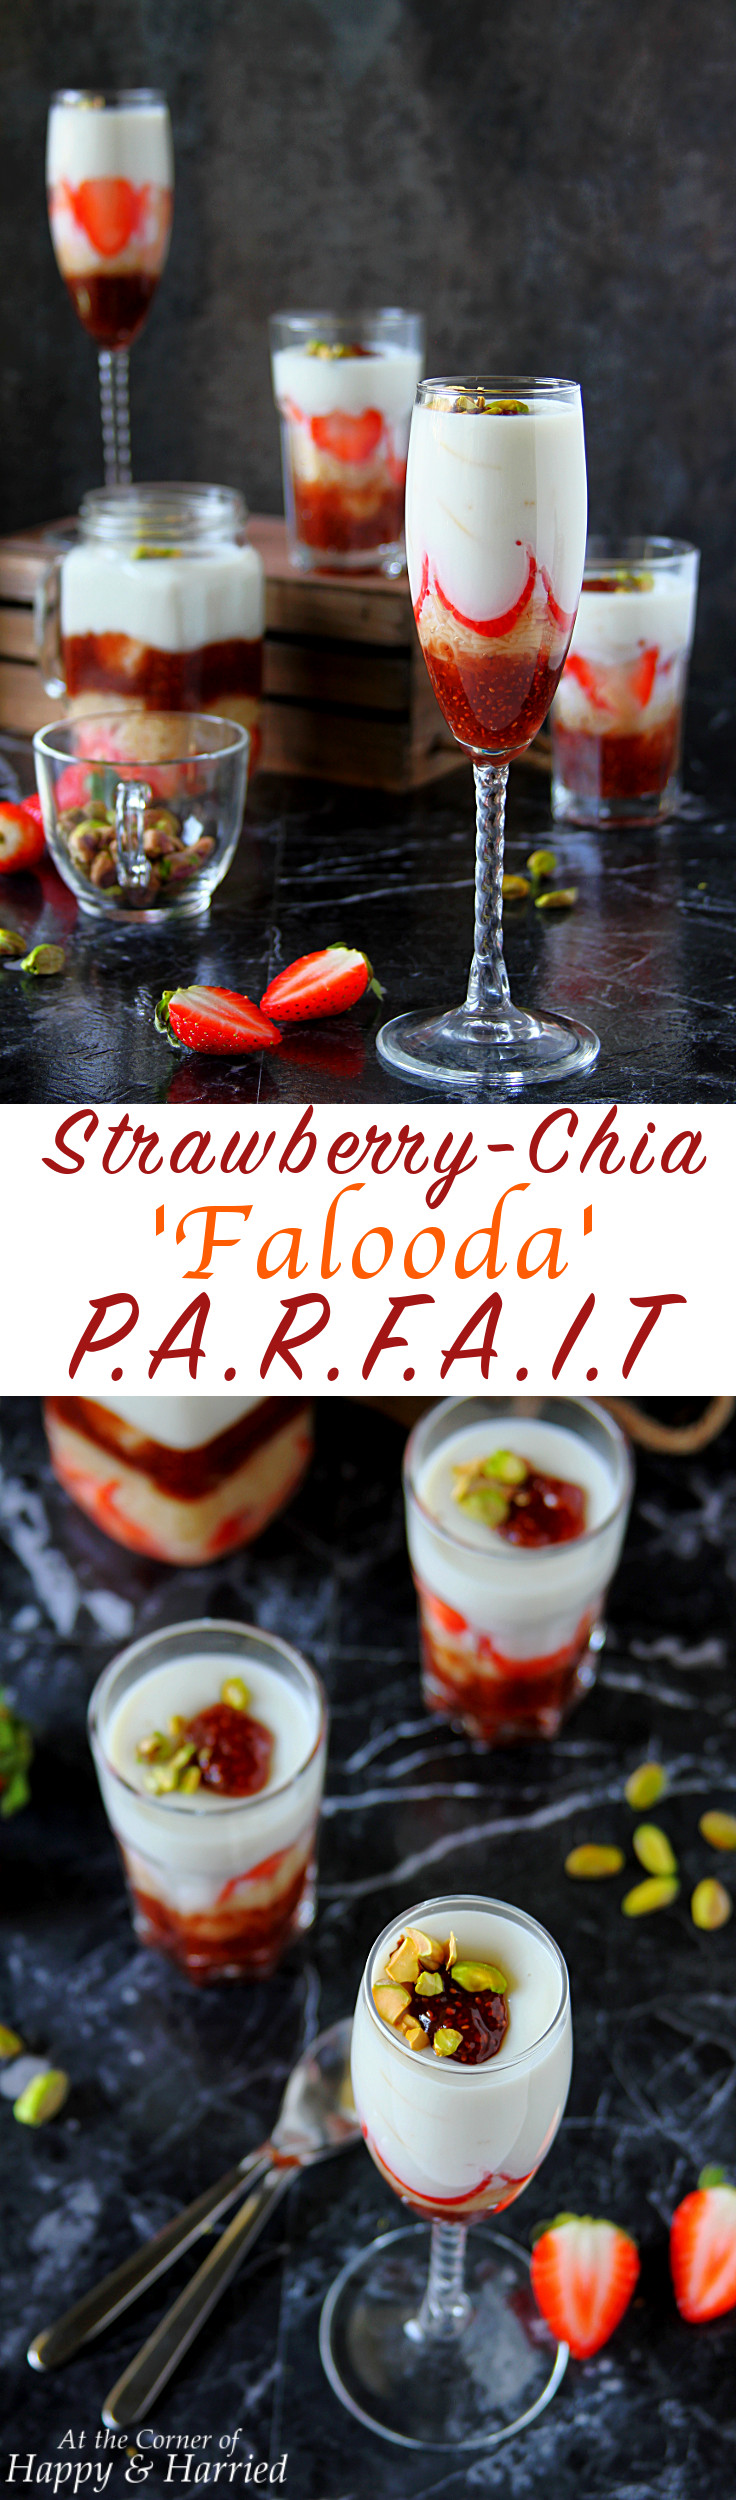 STRAWBERRY CHIA FALOODA PARFAIT - HAPPY&HARRIED